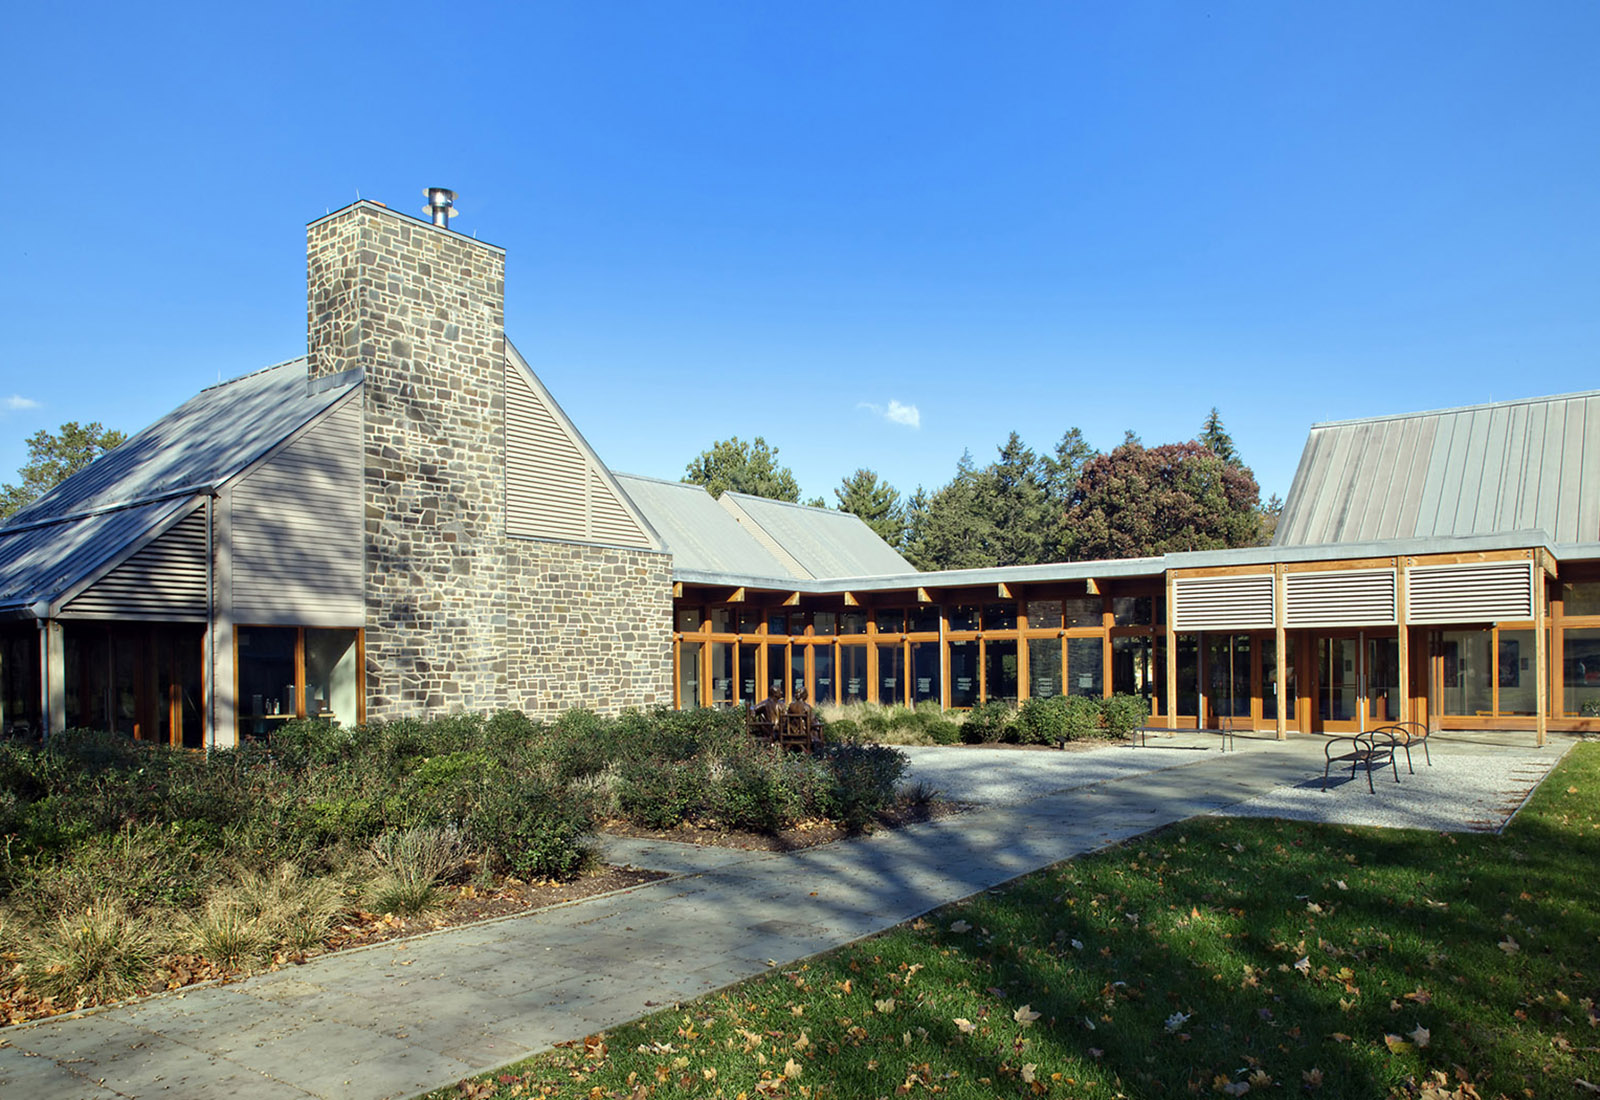 Franklin D. Roosevelt Presidential Library, Museum & Home Site